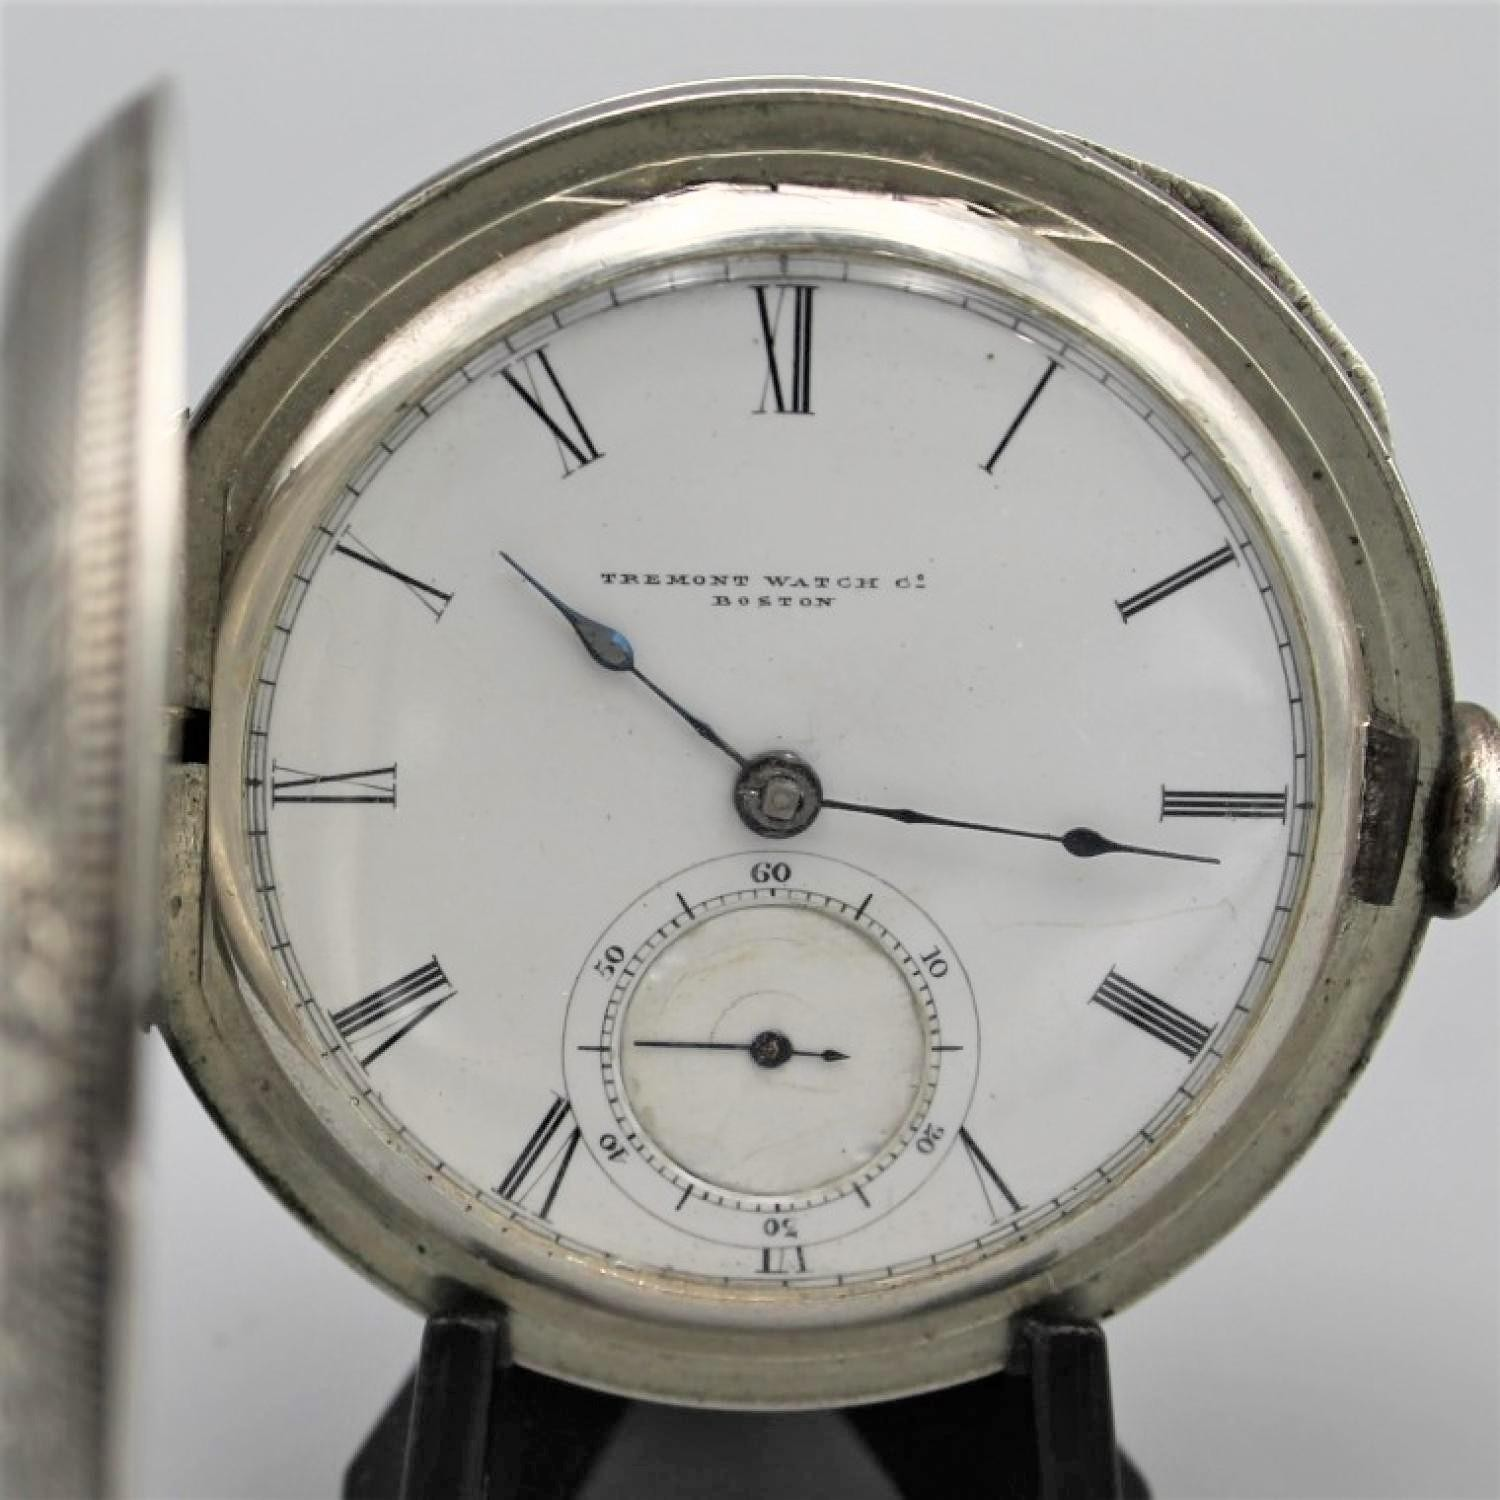 Image of Tremont Watch Co. Tremont Watch Co. #3219 Dial